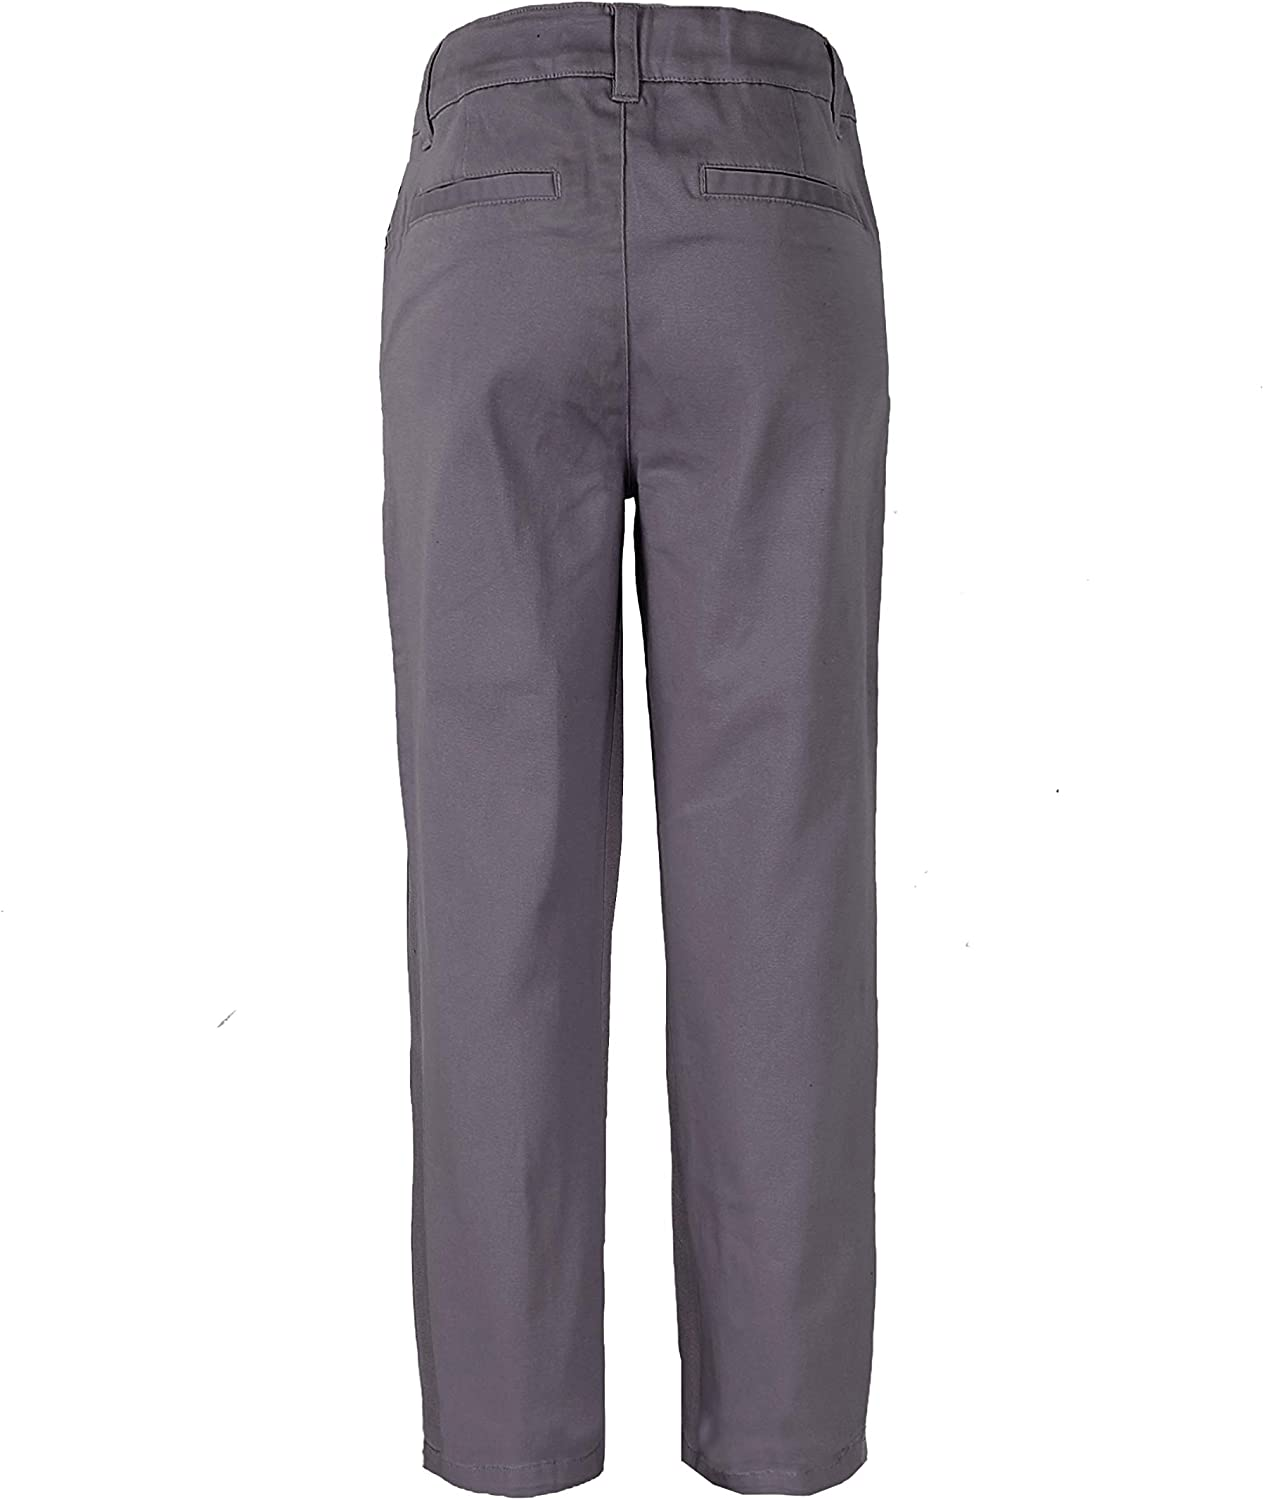 Bienzoe Girls Cotton Stretchy Slim Adjustable Waist School Uniform Pants